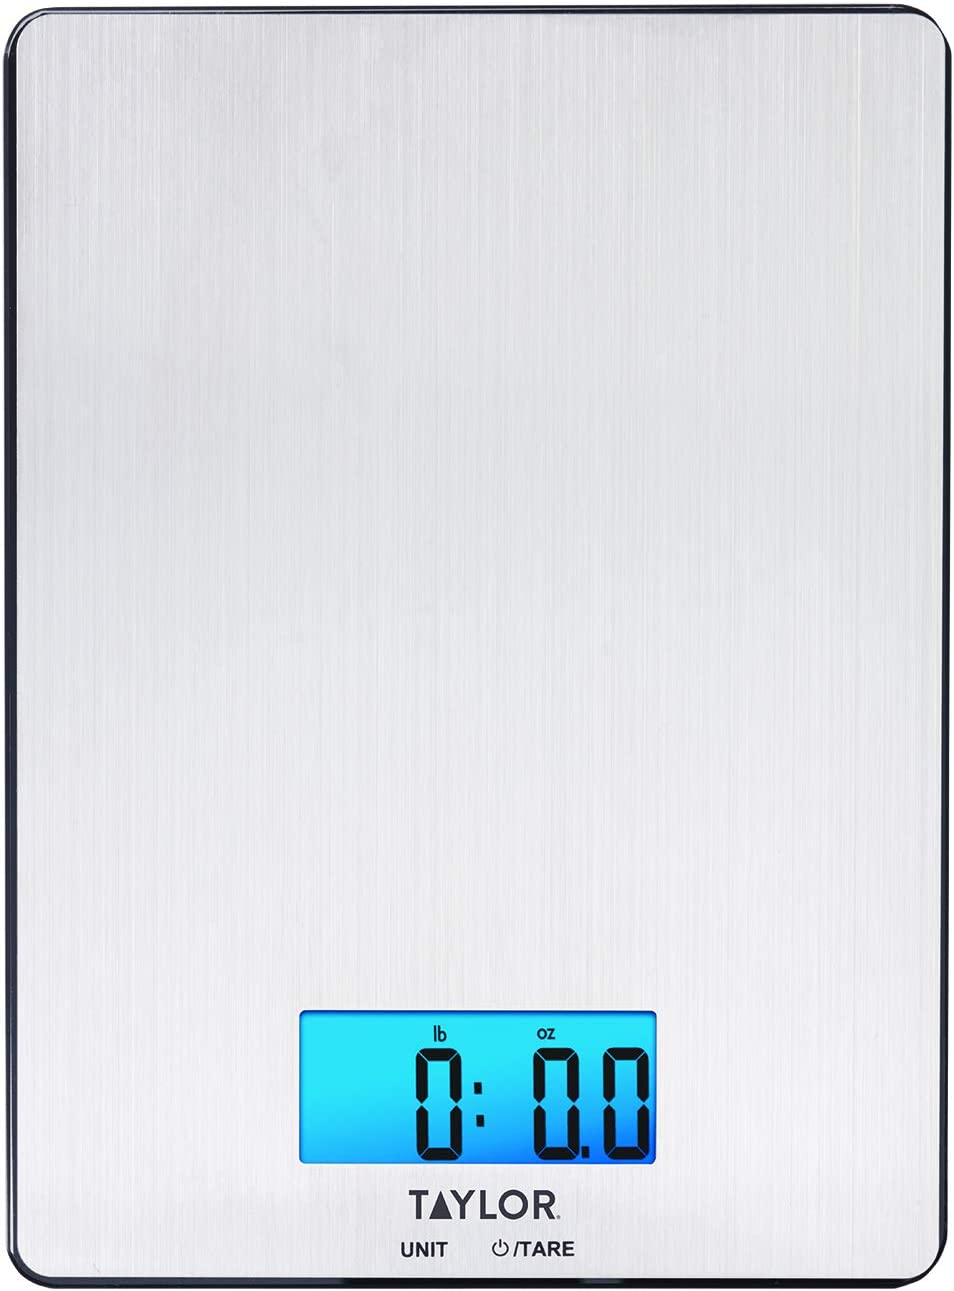 Taylor Precision Products 11lb Stainless Steel Digital Kitchen Scale, Ultra-Thin, Silver